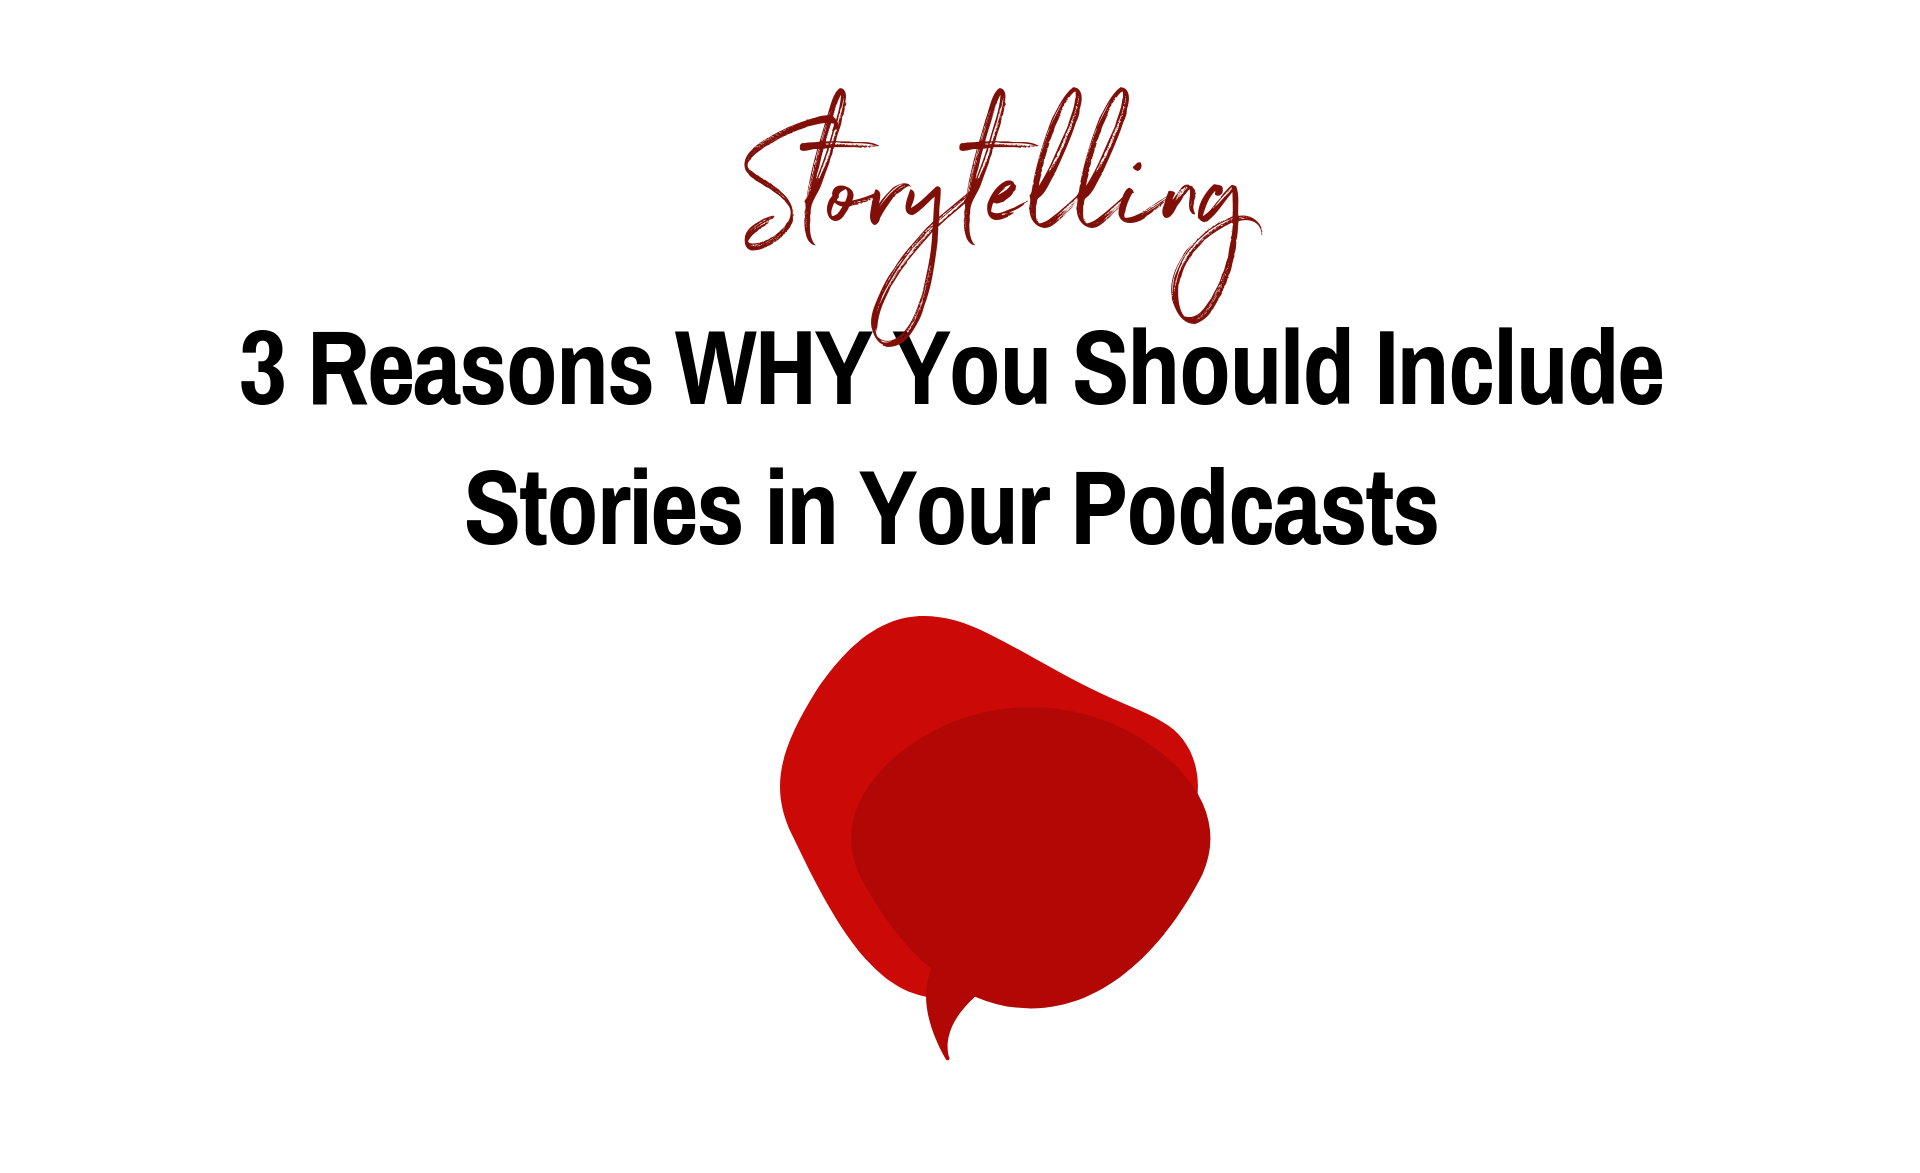 3 Reasons Why You Should Incorporate Storytelling into Your Podcast